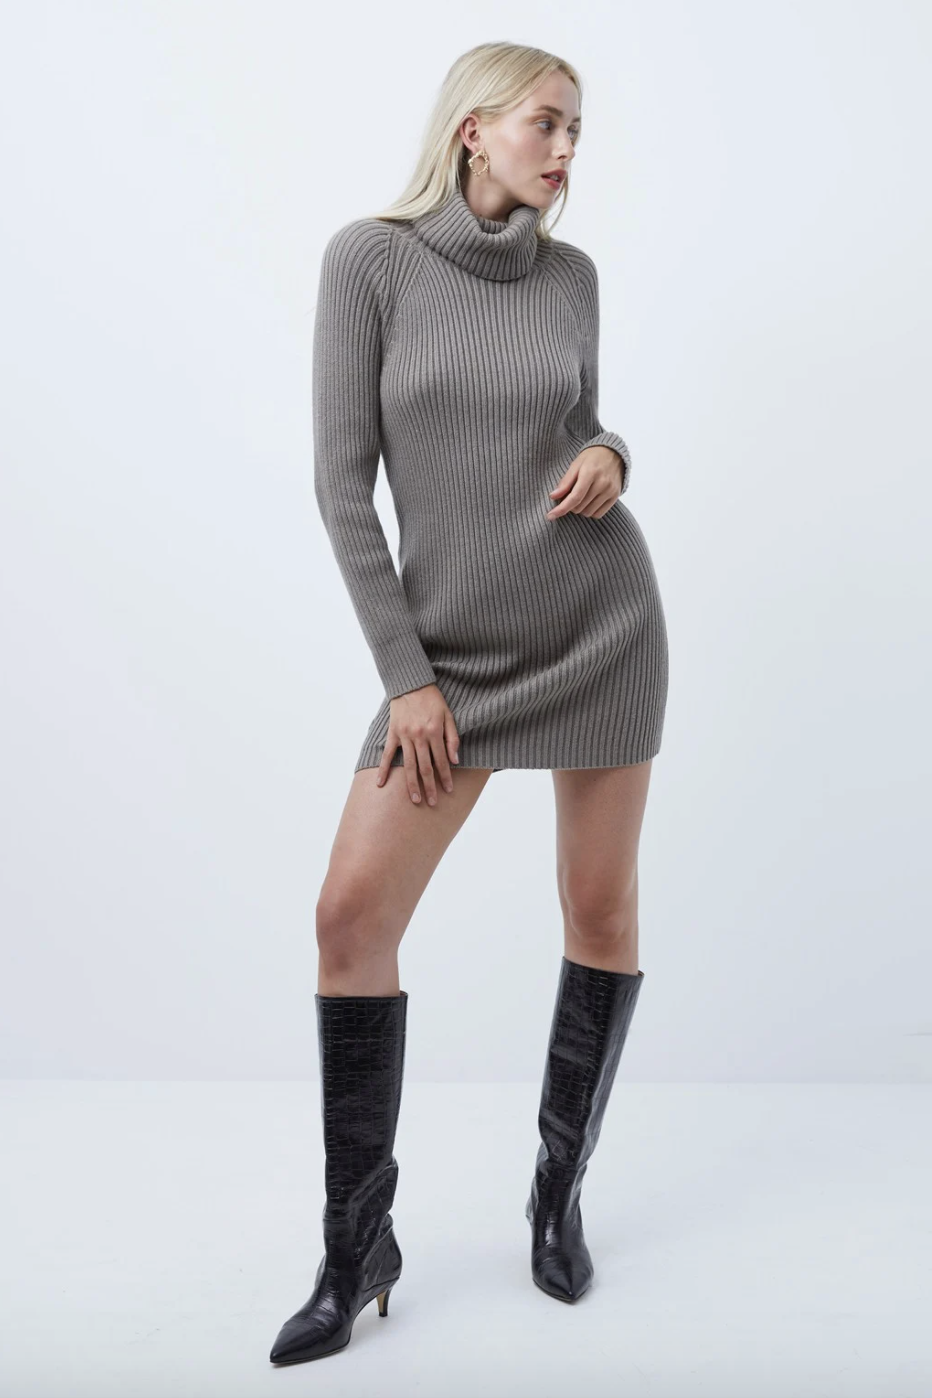 "<br><br><strong>French Connection</strong> Katerina Knitted Roll Neck Dress, $, available at <a href=""https://go.skimresources.com/?id=30283X879131&url=https%3A%2F%2Fusa.frenchconnection.com%2Fproduct%2Fwoman-collections-dresses%2F71pde%2Fkaterina-knits-roll-neck-dress.htm"" rel=""nofollow noopener"" target=""_blank"" data-ylk=""slk:French Connection"" class=""link rapid-noclick-resp"">French Connection</a>"